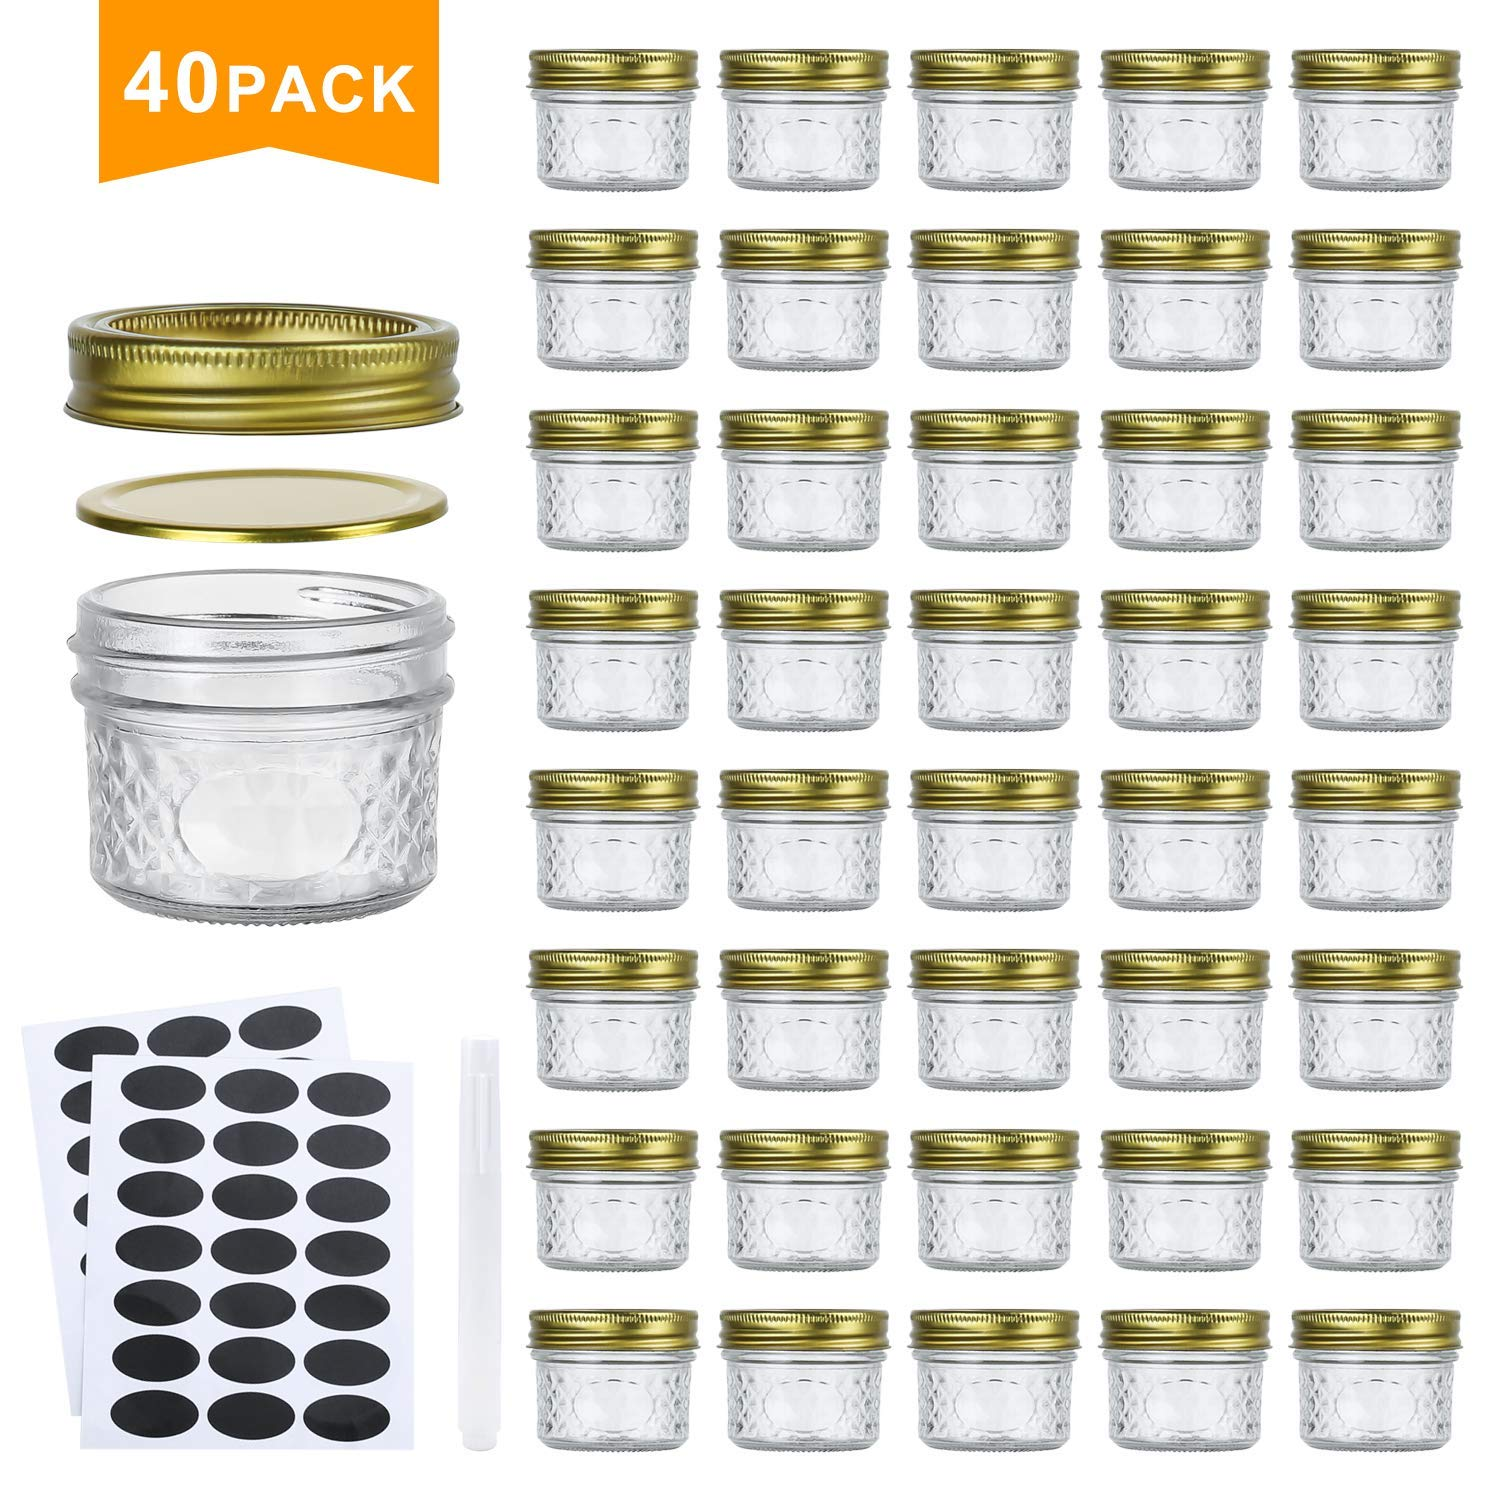 Encheng 4 oz Glass Jars With Lids And Bands,Small Canning Jars For Caviar,Herb,Jelly,Jams,Mini Wide Mouth Mason Jars For Kitchen Storage Preserving Food And Party Favors 40 Pack ...